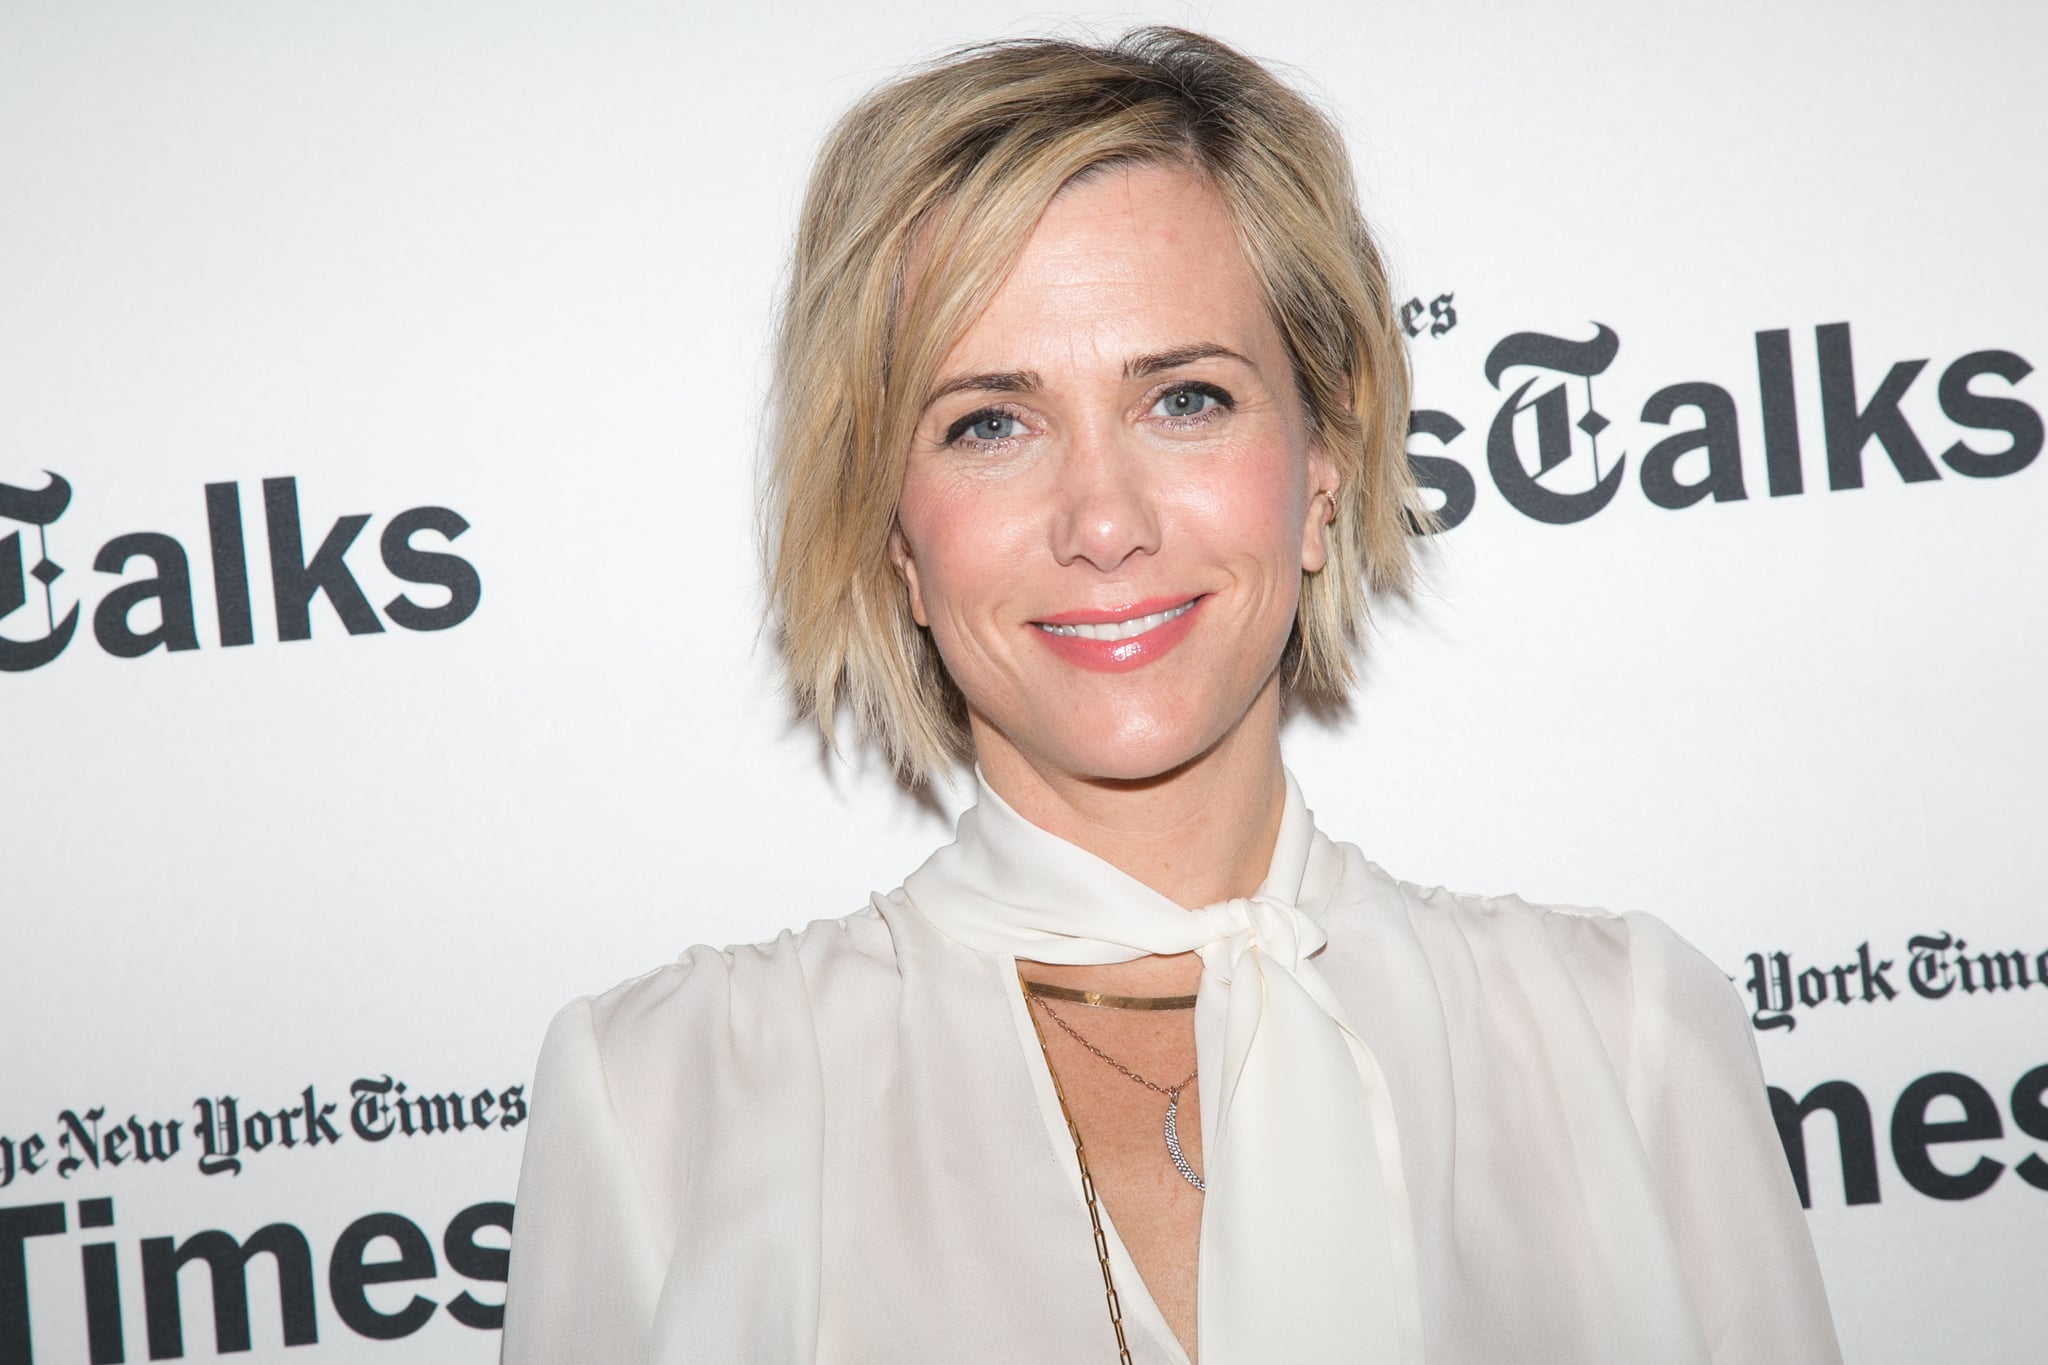 NEW YORK, NY - APRIL 28:  Kristen Wiig attends TimesTalks Presents An Evening With Kristen Wiig And Shira Piven at Times Center on April 28, 2015 in New York City.  (Photo by Nomi Ellenson/FilmMagic)